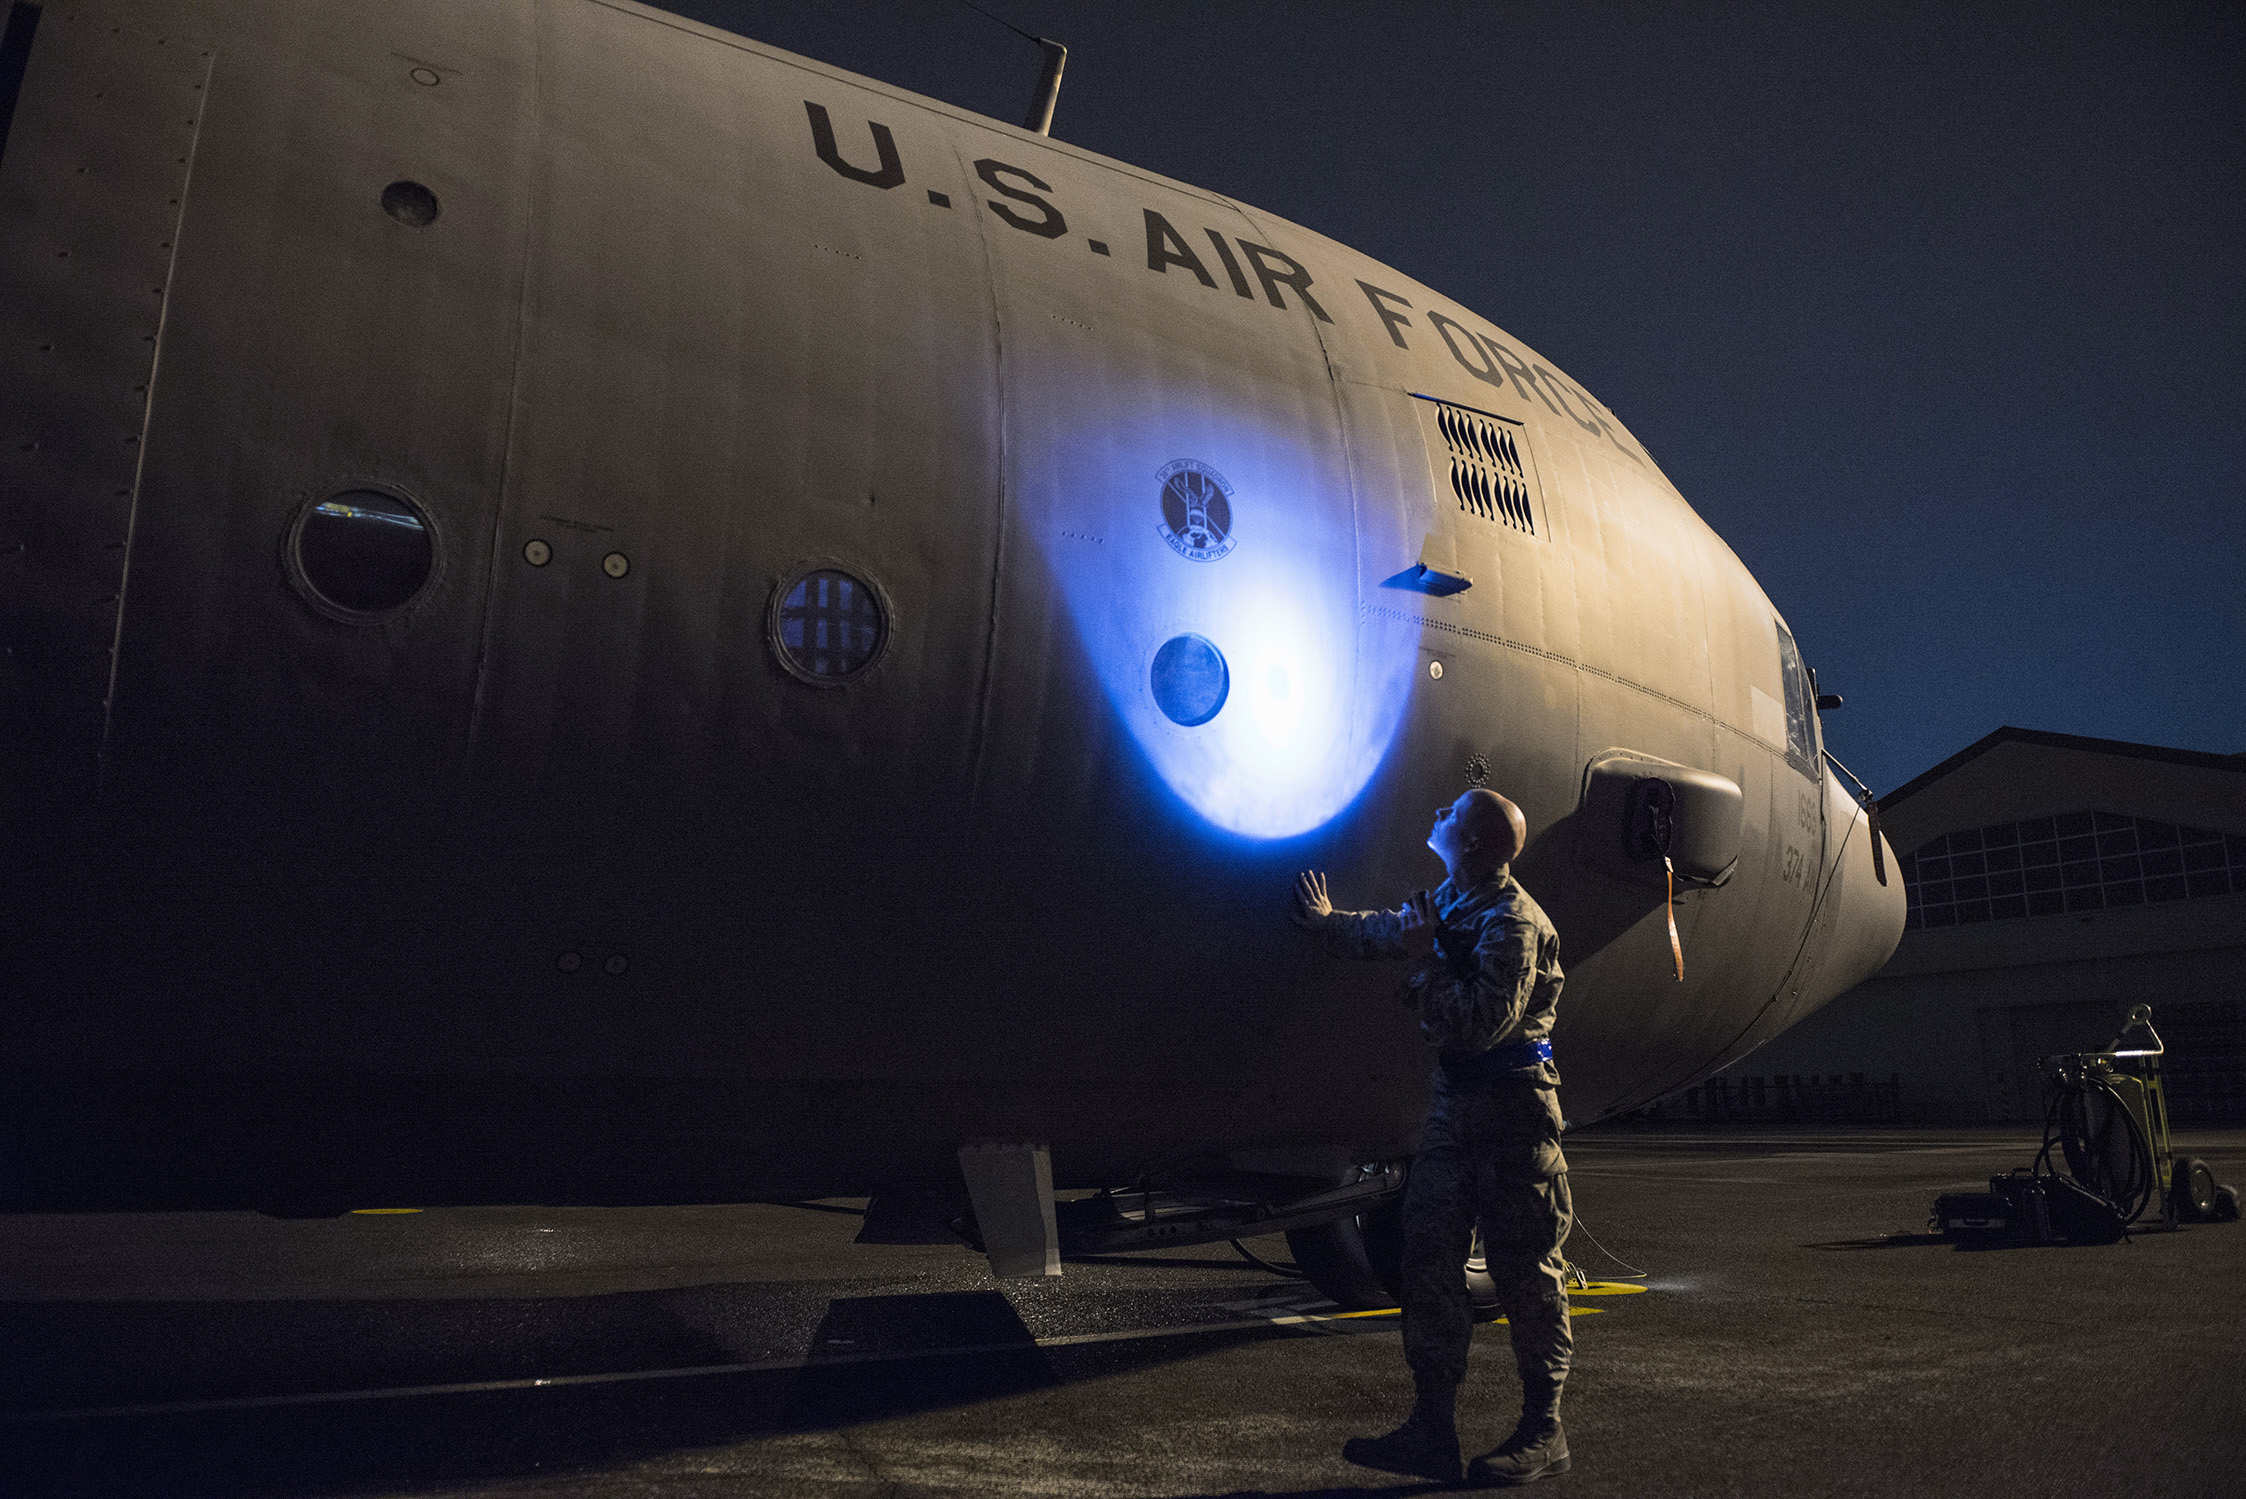 Airman 1st Class Christopher Cook, 374th Aircraft Maintenance Squadron crew chief, inspects a C-130 Hercules for obvious physical damage or leaks and ensures all fasteners are sealed during VIGILANT ACE 16 at Yokota Air Base, Japan, Nov. 2 2015. VIGILANT ACE 16 is a U.S.-Republic of Korea combined exercise aimed at enhancing operational and tactical level coordination through combined and joint combat training. The exercise also provides critical training for the Airmen of the 374th Airlift Wing to maintain peace and stability in Japan and the entire Indo-Asia Pacific region. (U.S. Air Force photo by Staff Sgt. Cody H. Ramirez/Released)